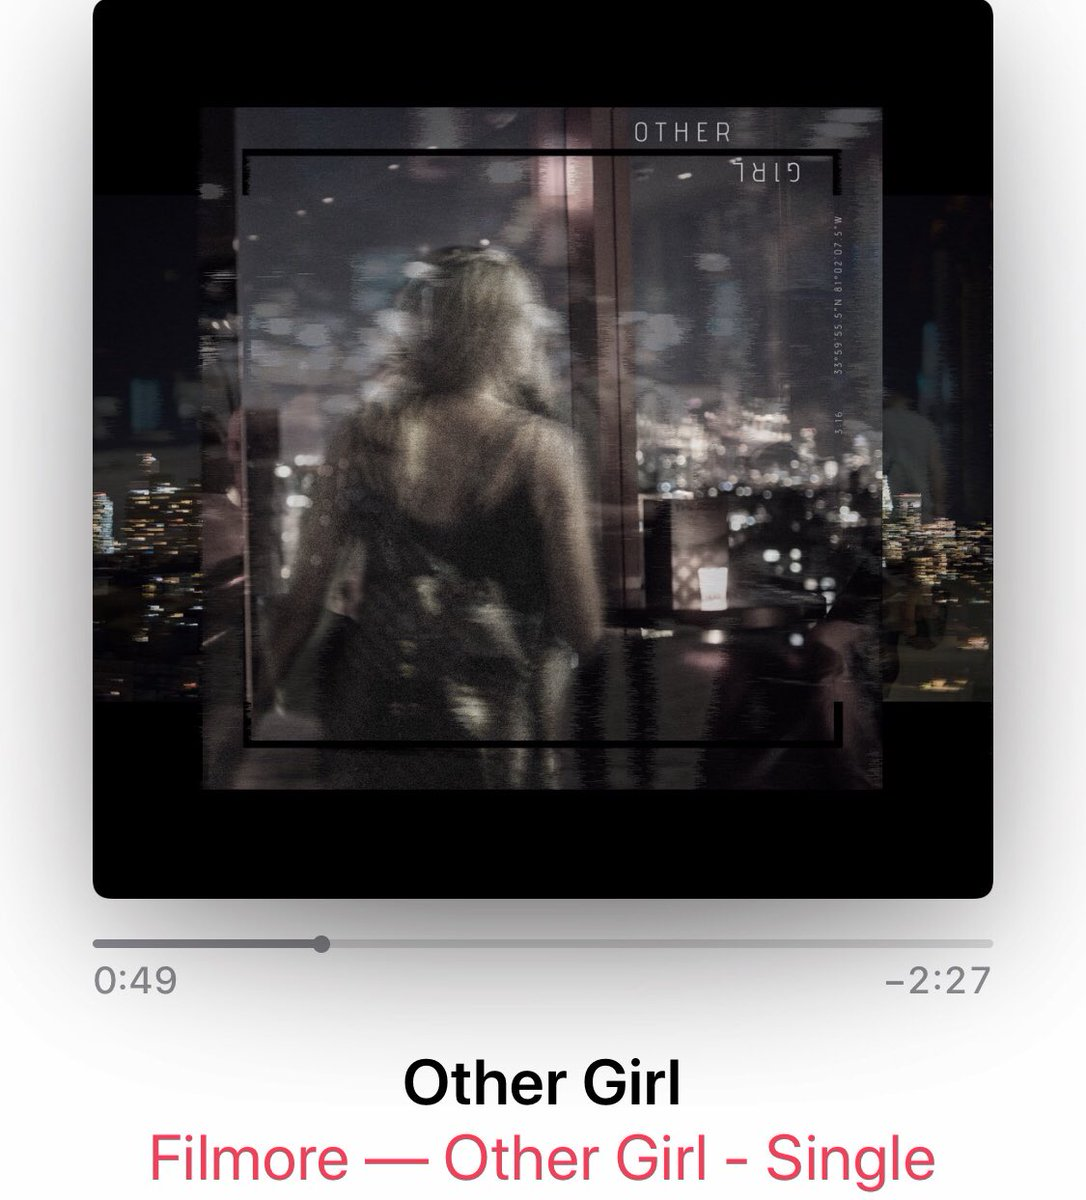 Lovin @filmoremusic new song Other Girl!!! Soooo good!! 🎶👊 #MyOneinSixBillion #OtherGirl #Filmore